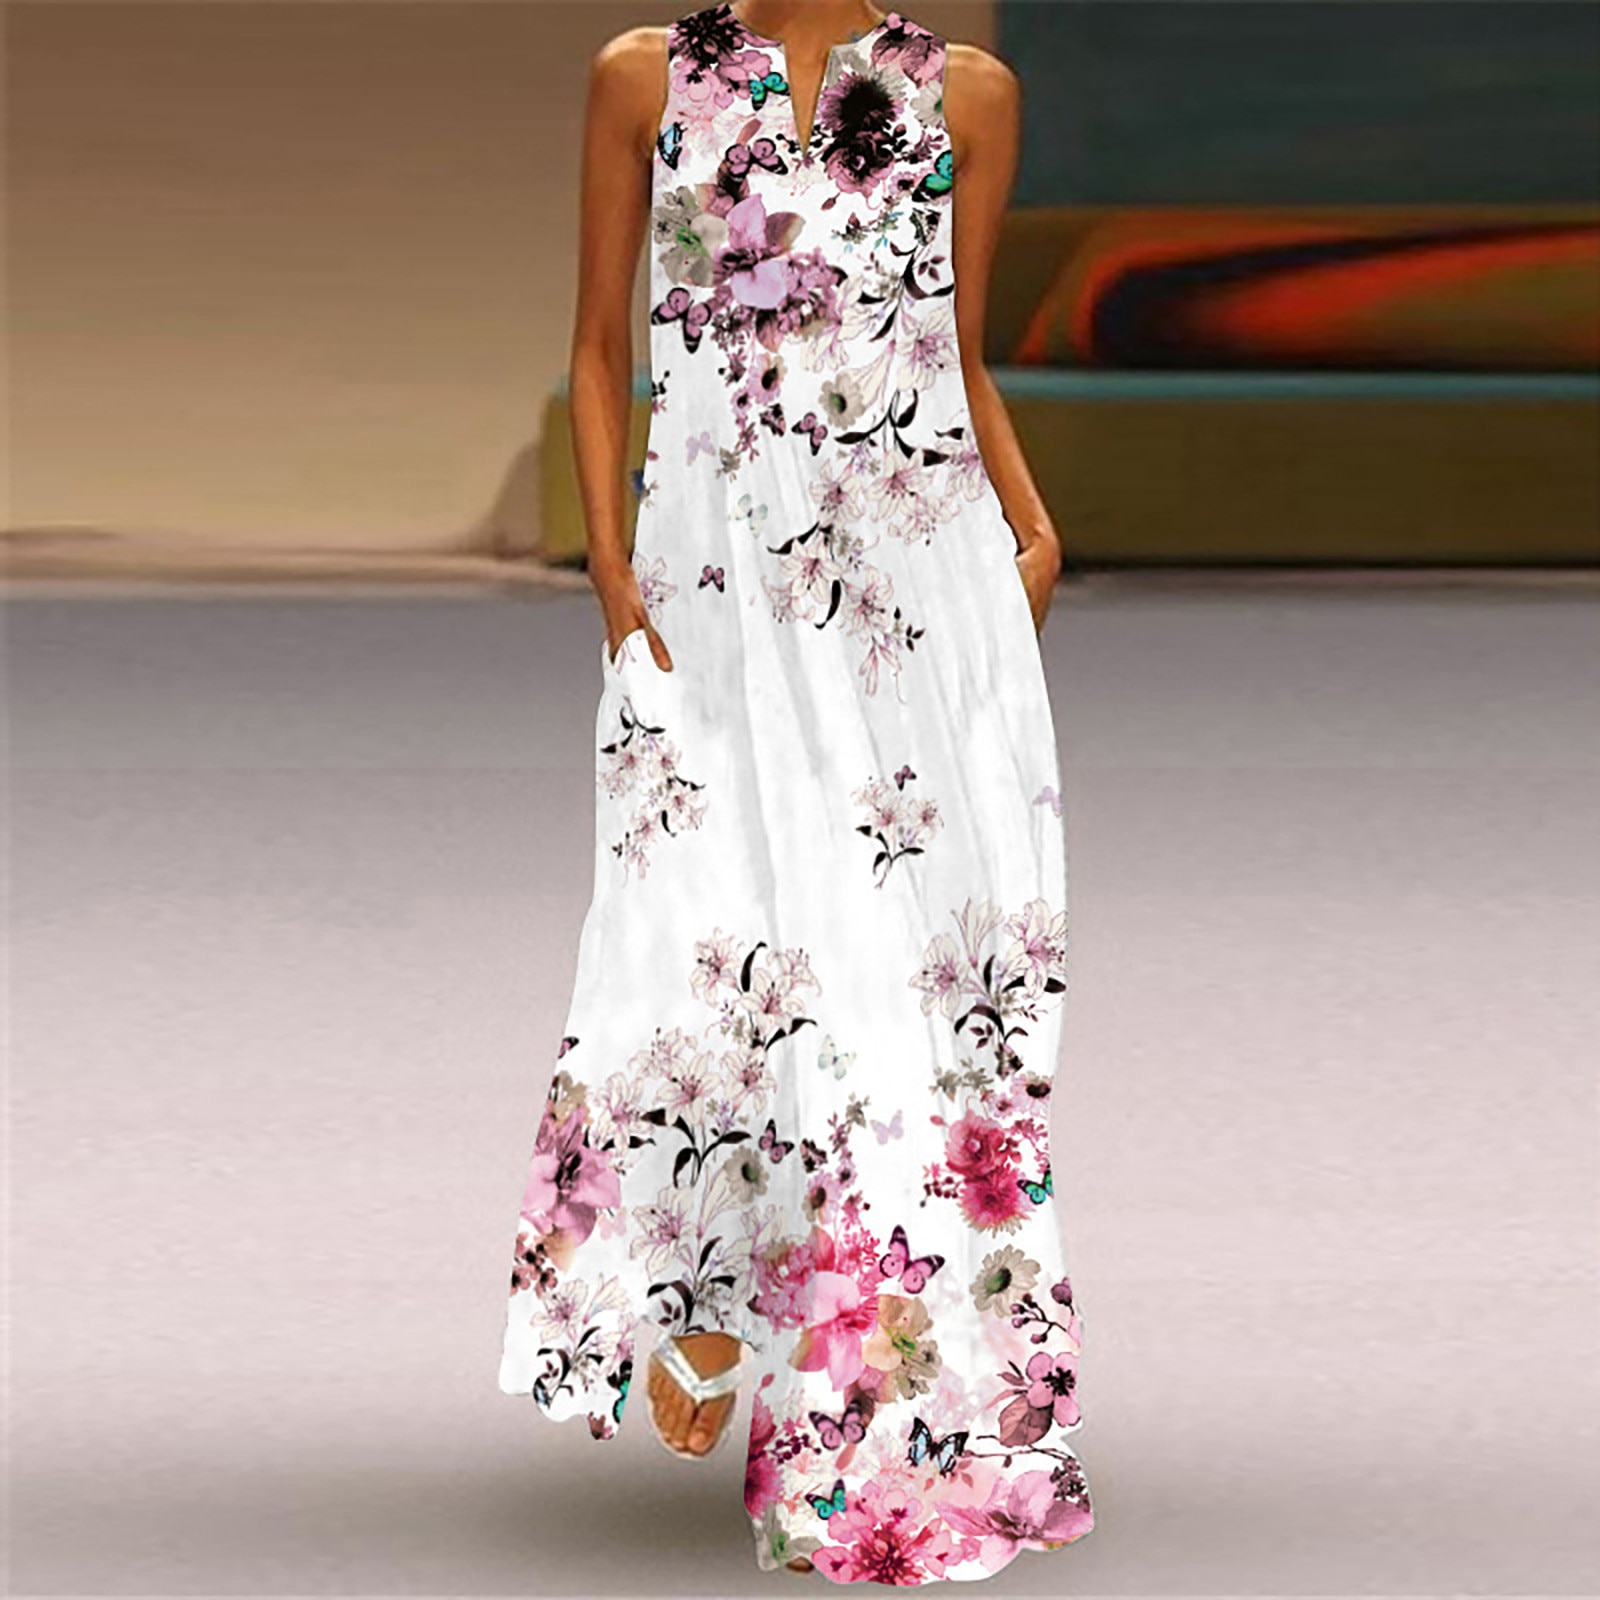 40# Sleeveless Maxi Dress Floral Printed Vintage Robe Femme Bohemia Ruffle Big Swing Long Woman Dress V-neck Split Long Dress